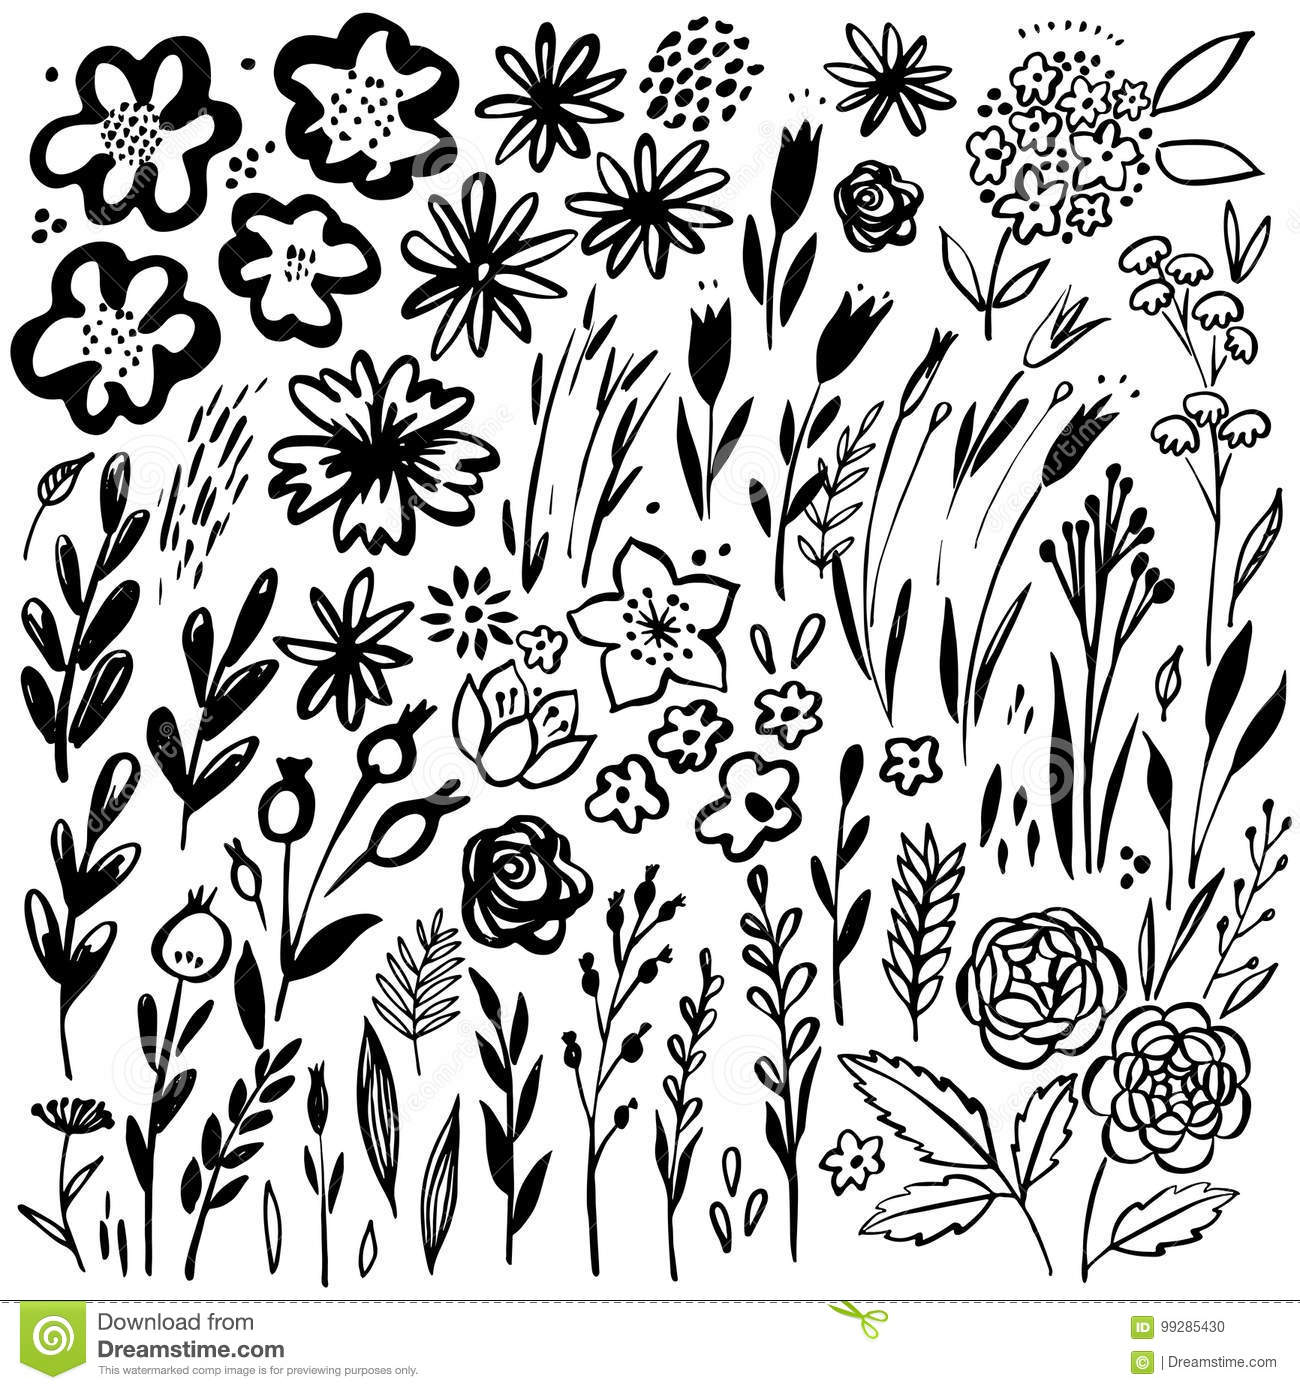 Vector Silhouettes Of Flowers And Grass Cartoon Vector